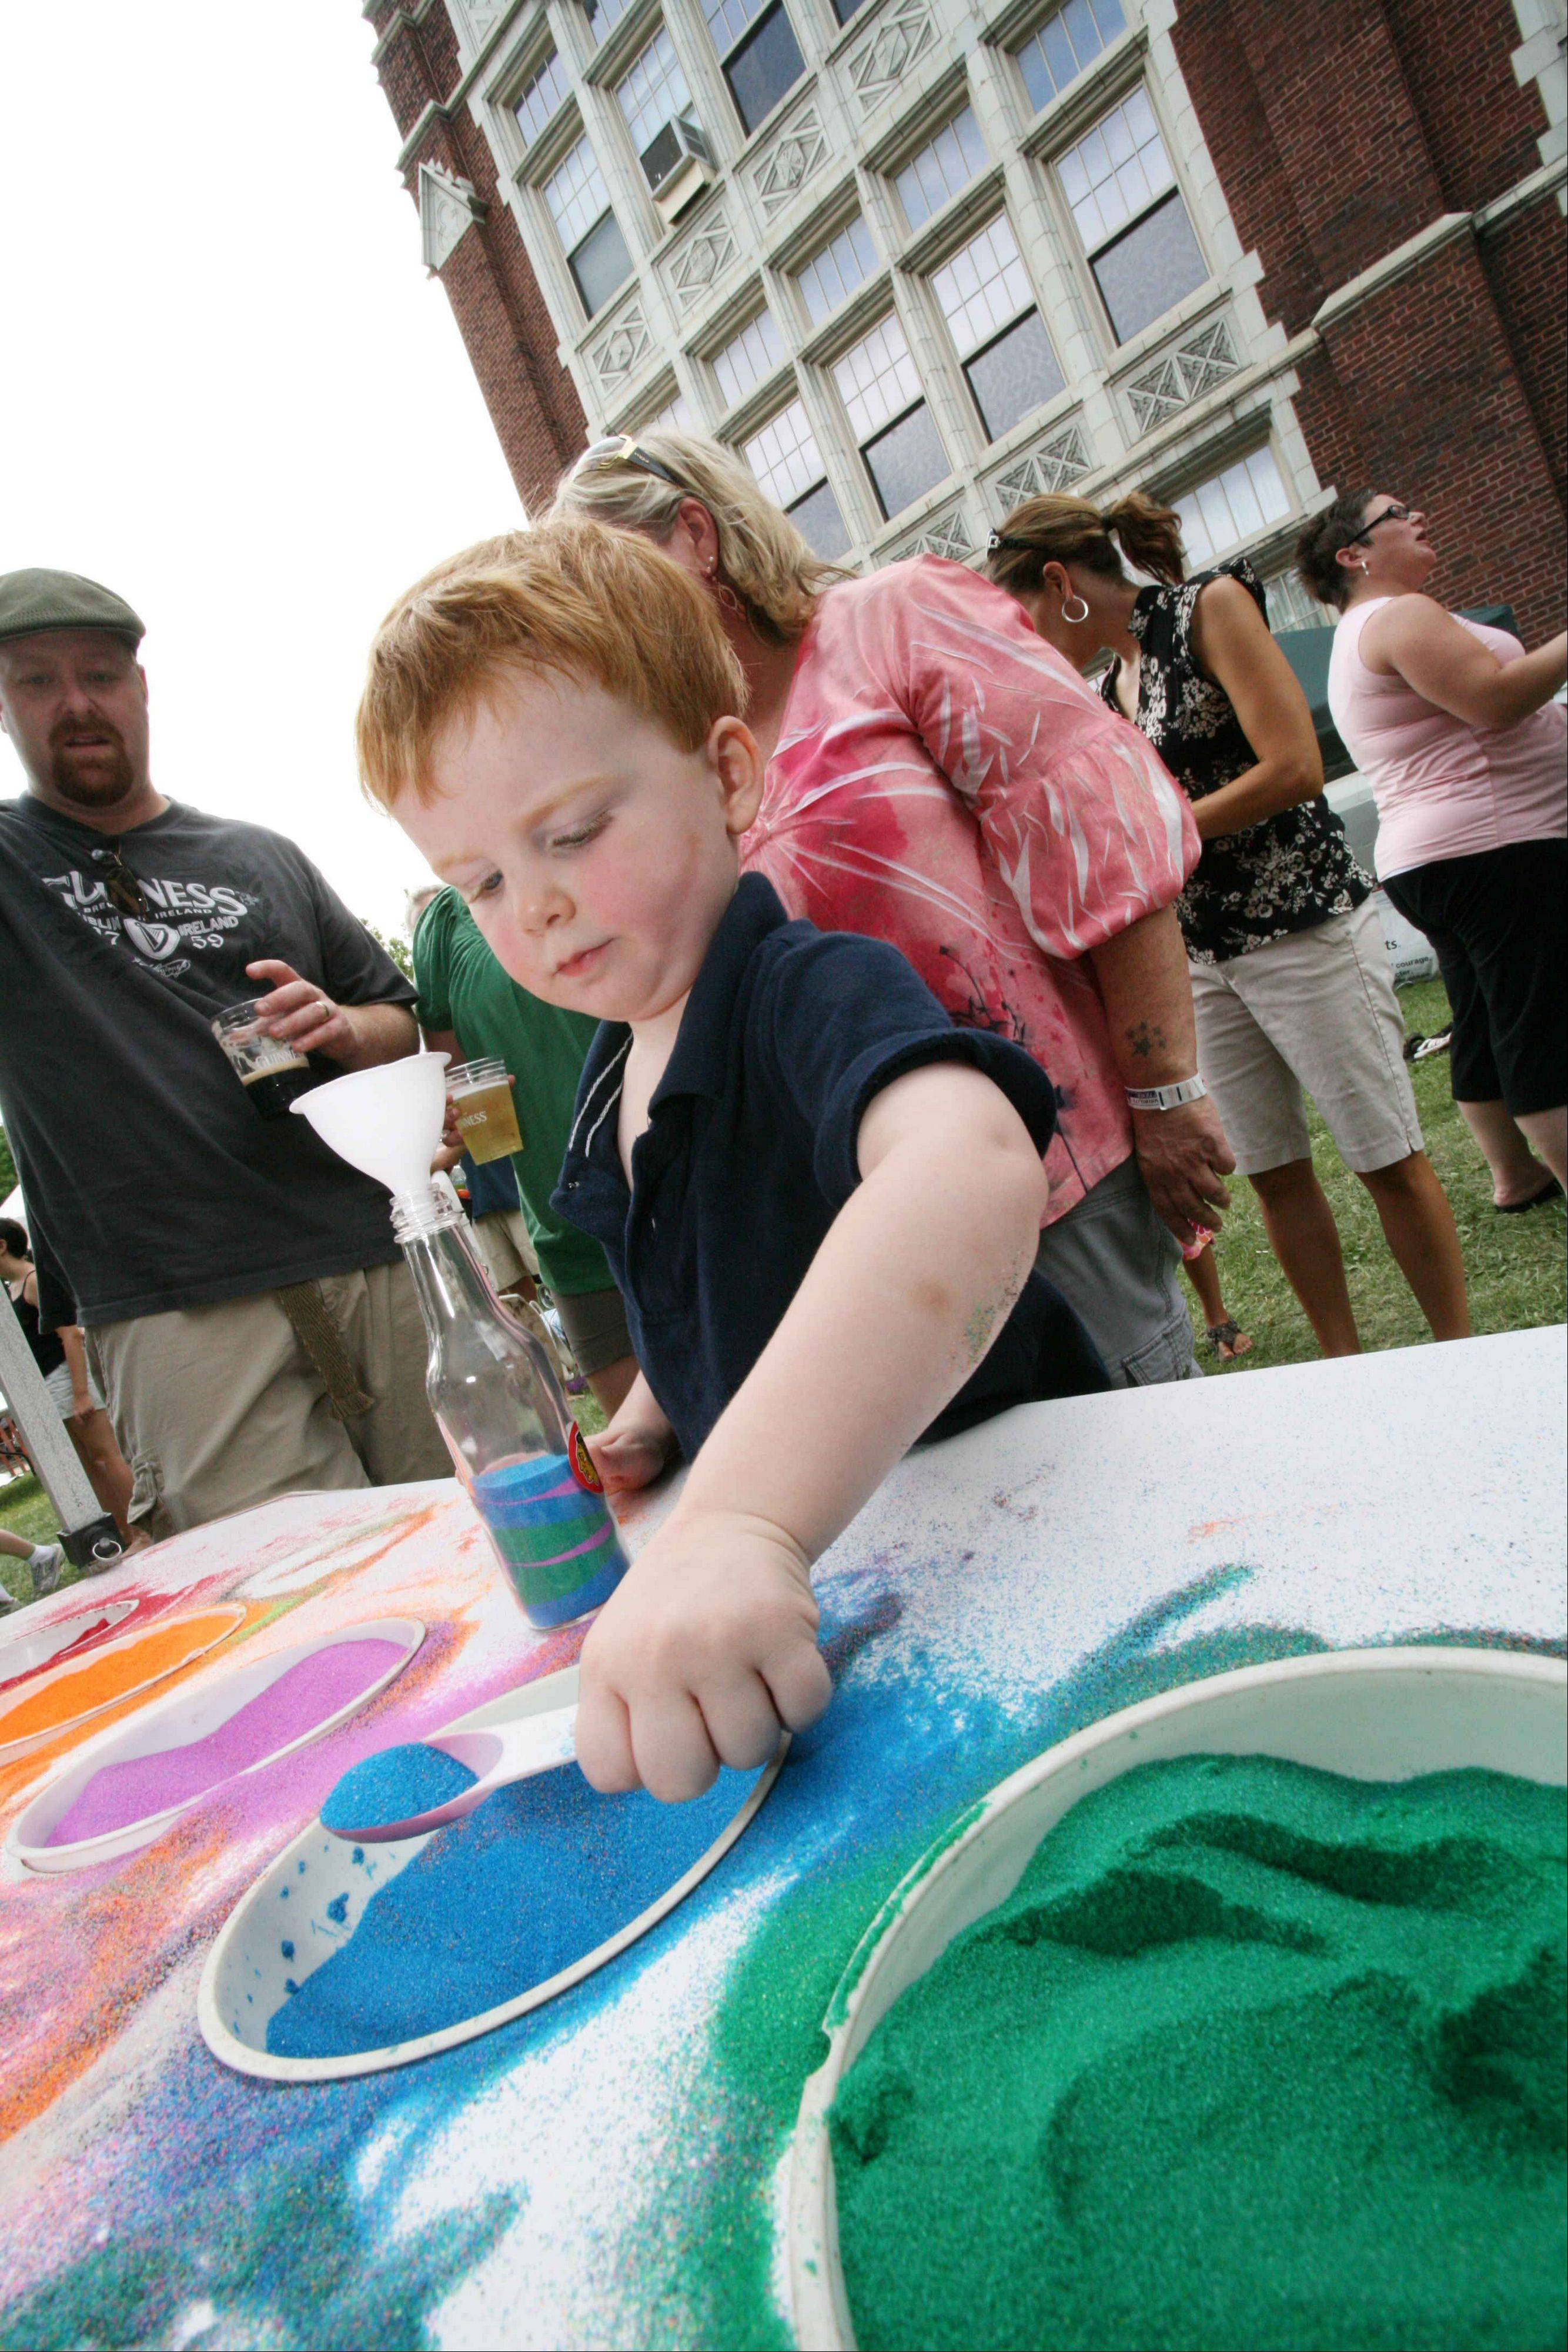 Kids can take part in plenty of fun activities at the annual Irish American Heritage Festival in Chicago July 8-10.